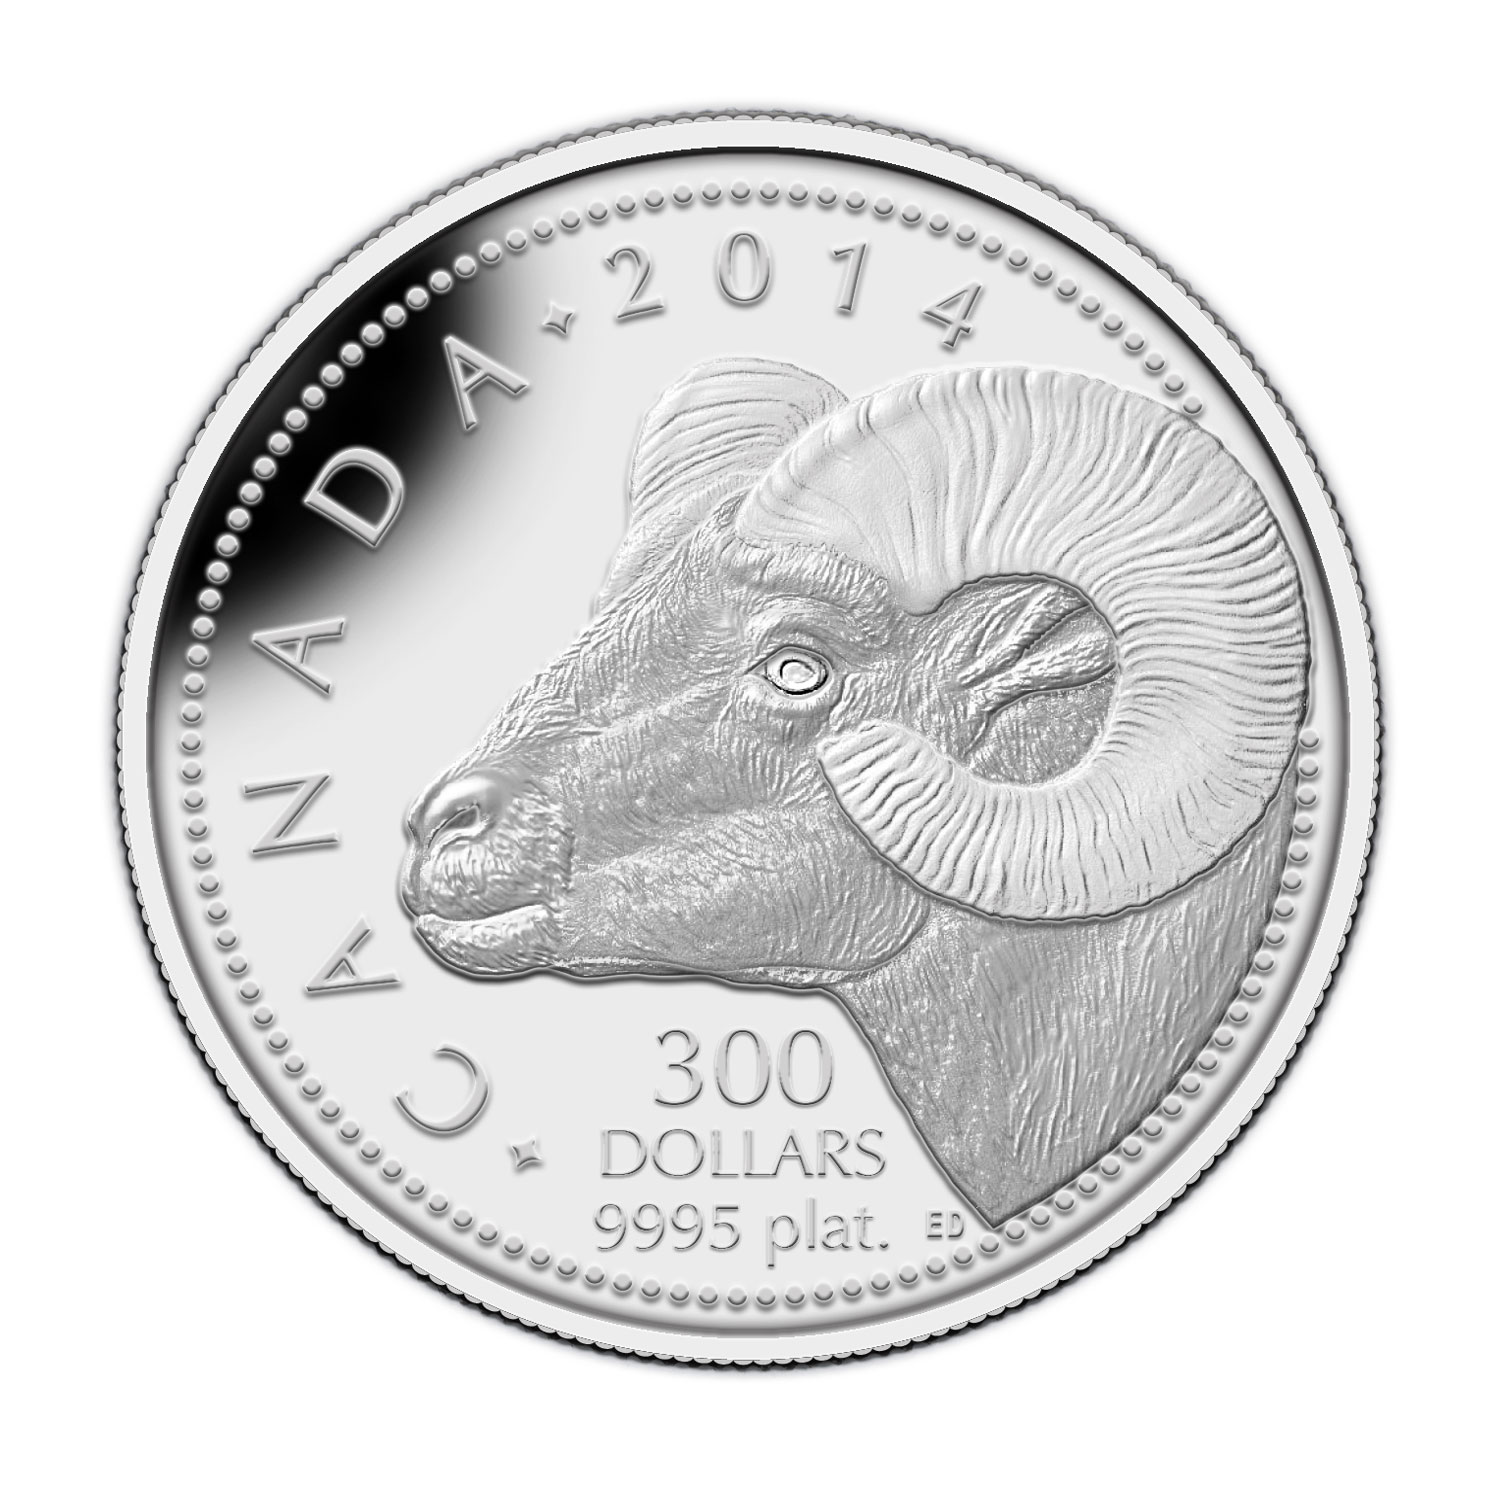 2014 1 oz Platinum Canadian $300 - Rocky Mountain Bighorn Sheep